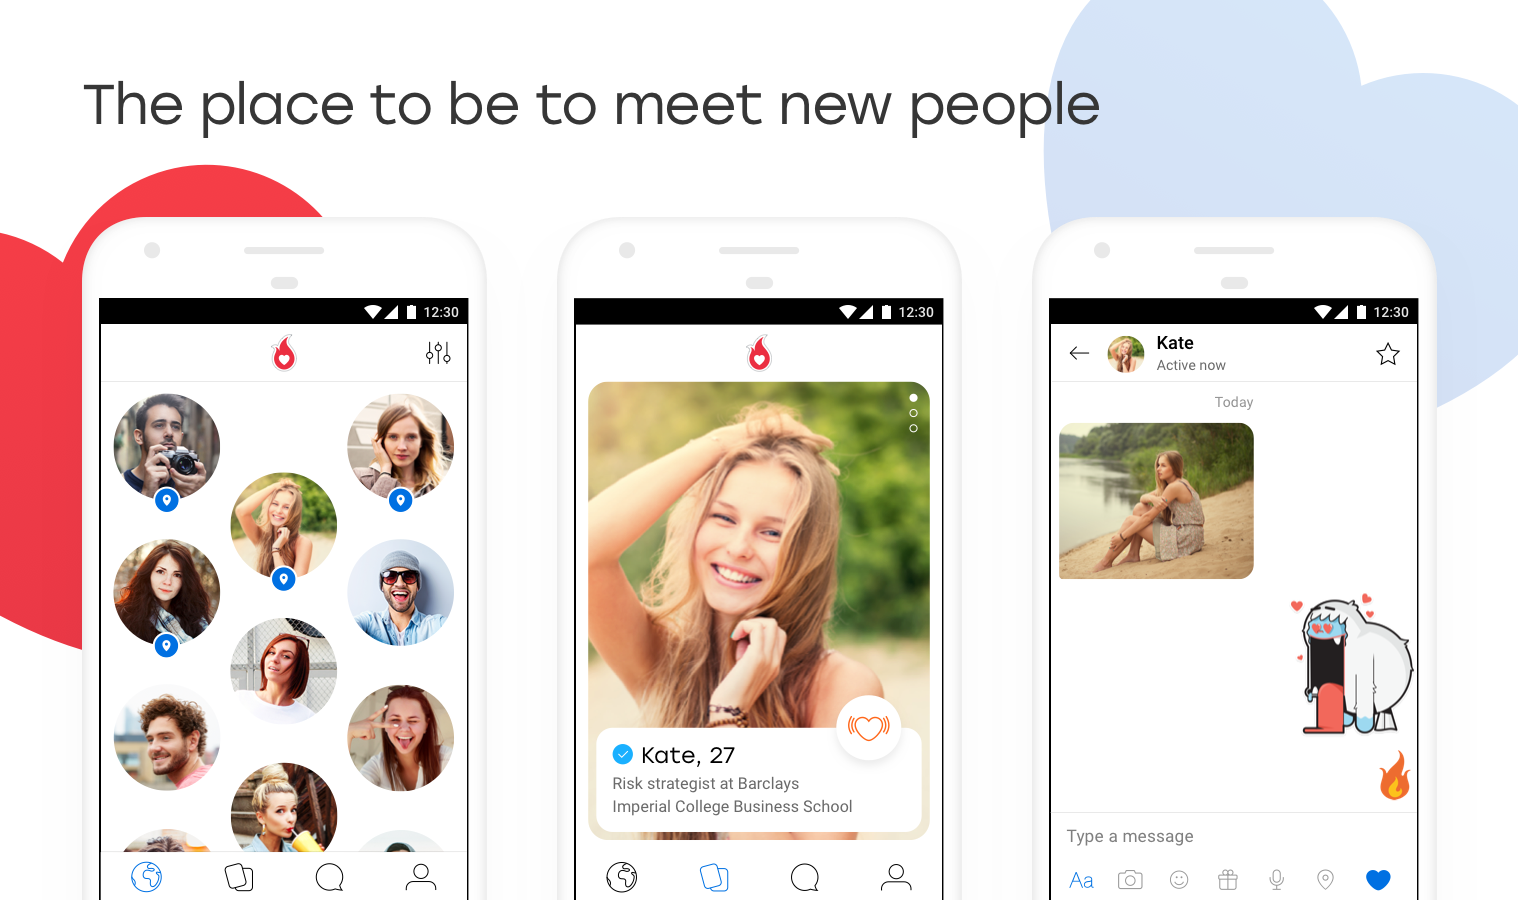 What are some dating app alternatives to Tinder